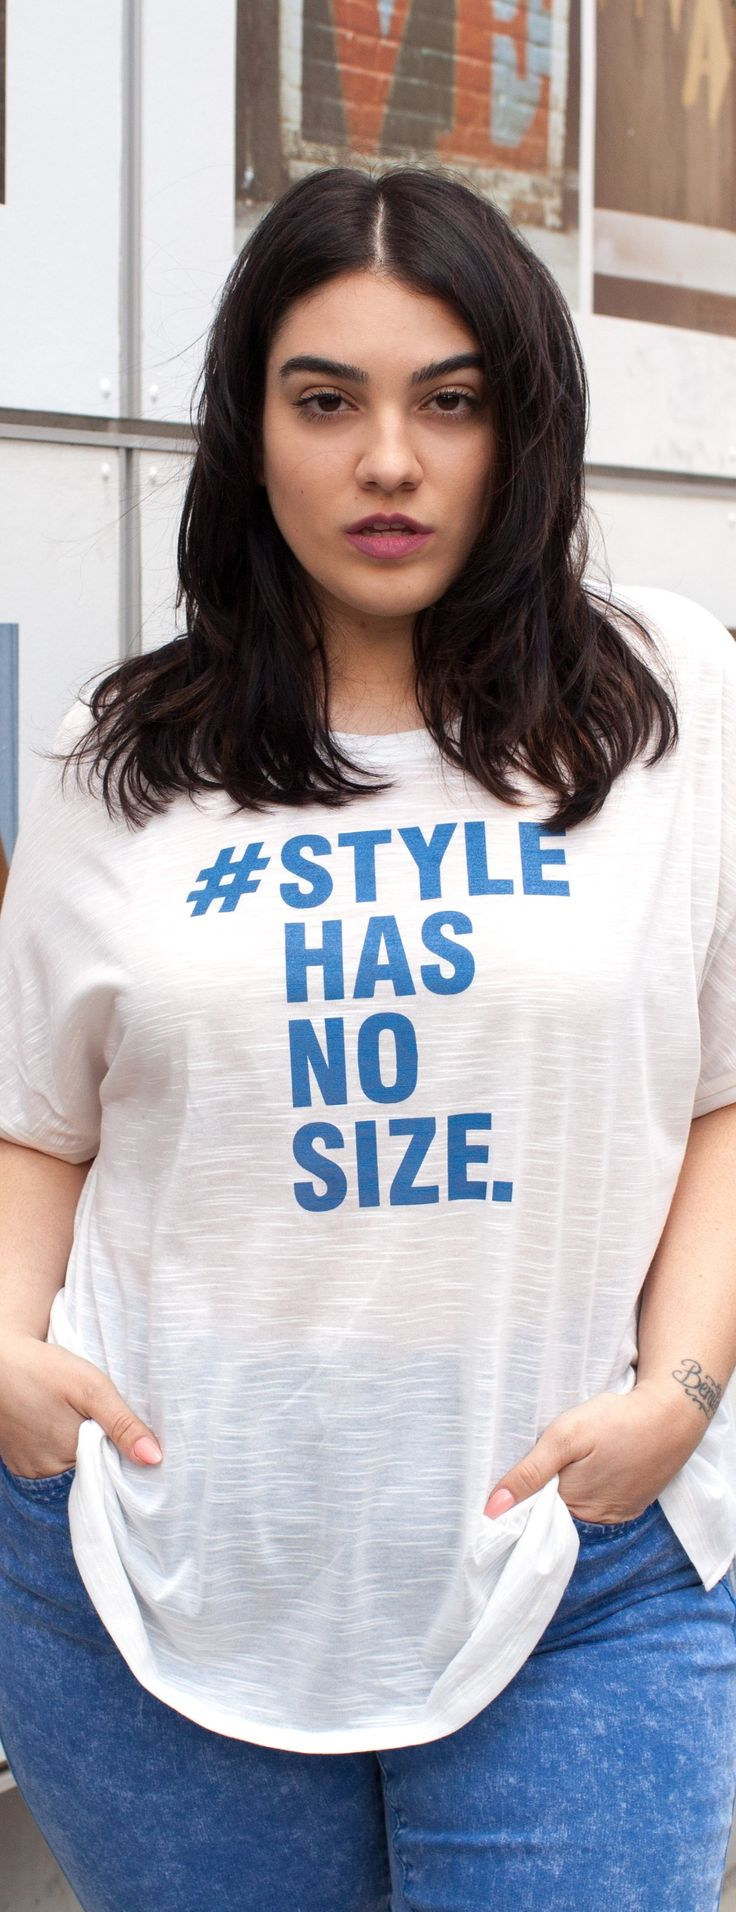 Style has no size! Read article with fashion tips for plus size (petite) women. (I'm still editing it, but you can read it if you want): http://www.boomerinas.com/2015/10/04/petite-plus-size-brands-womens-fashion-tips-for-cruisewear-casual-wear-eveningwear/